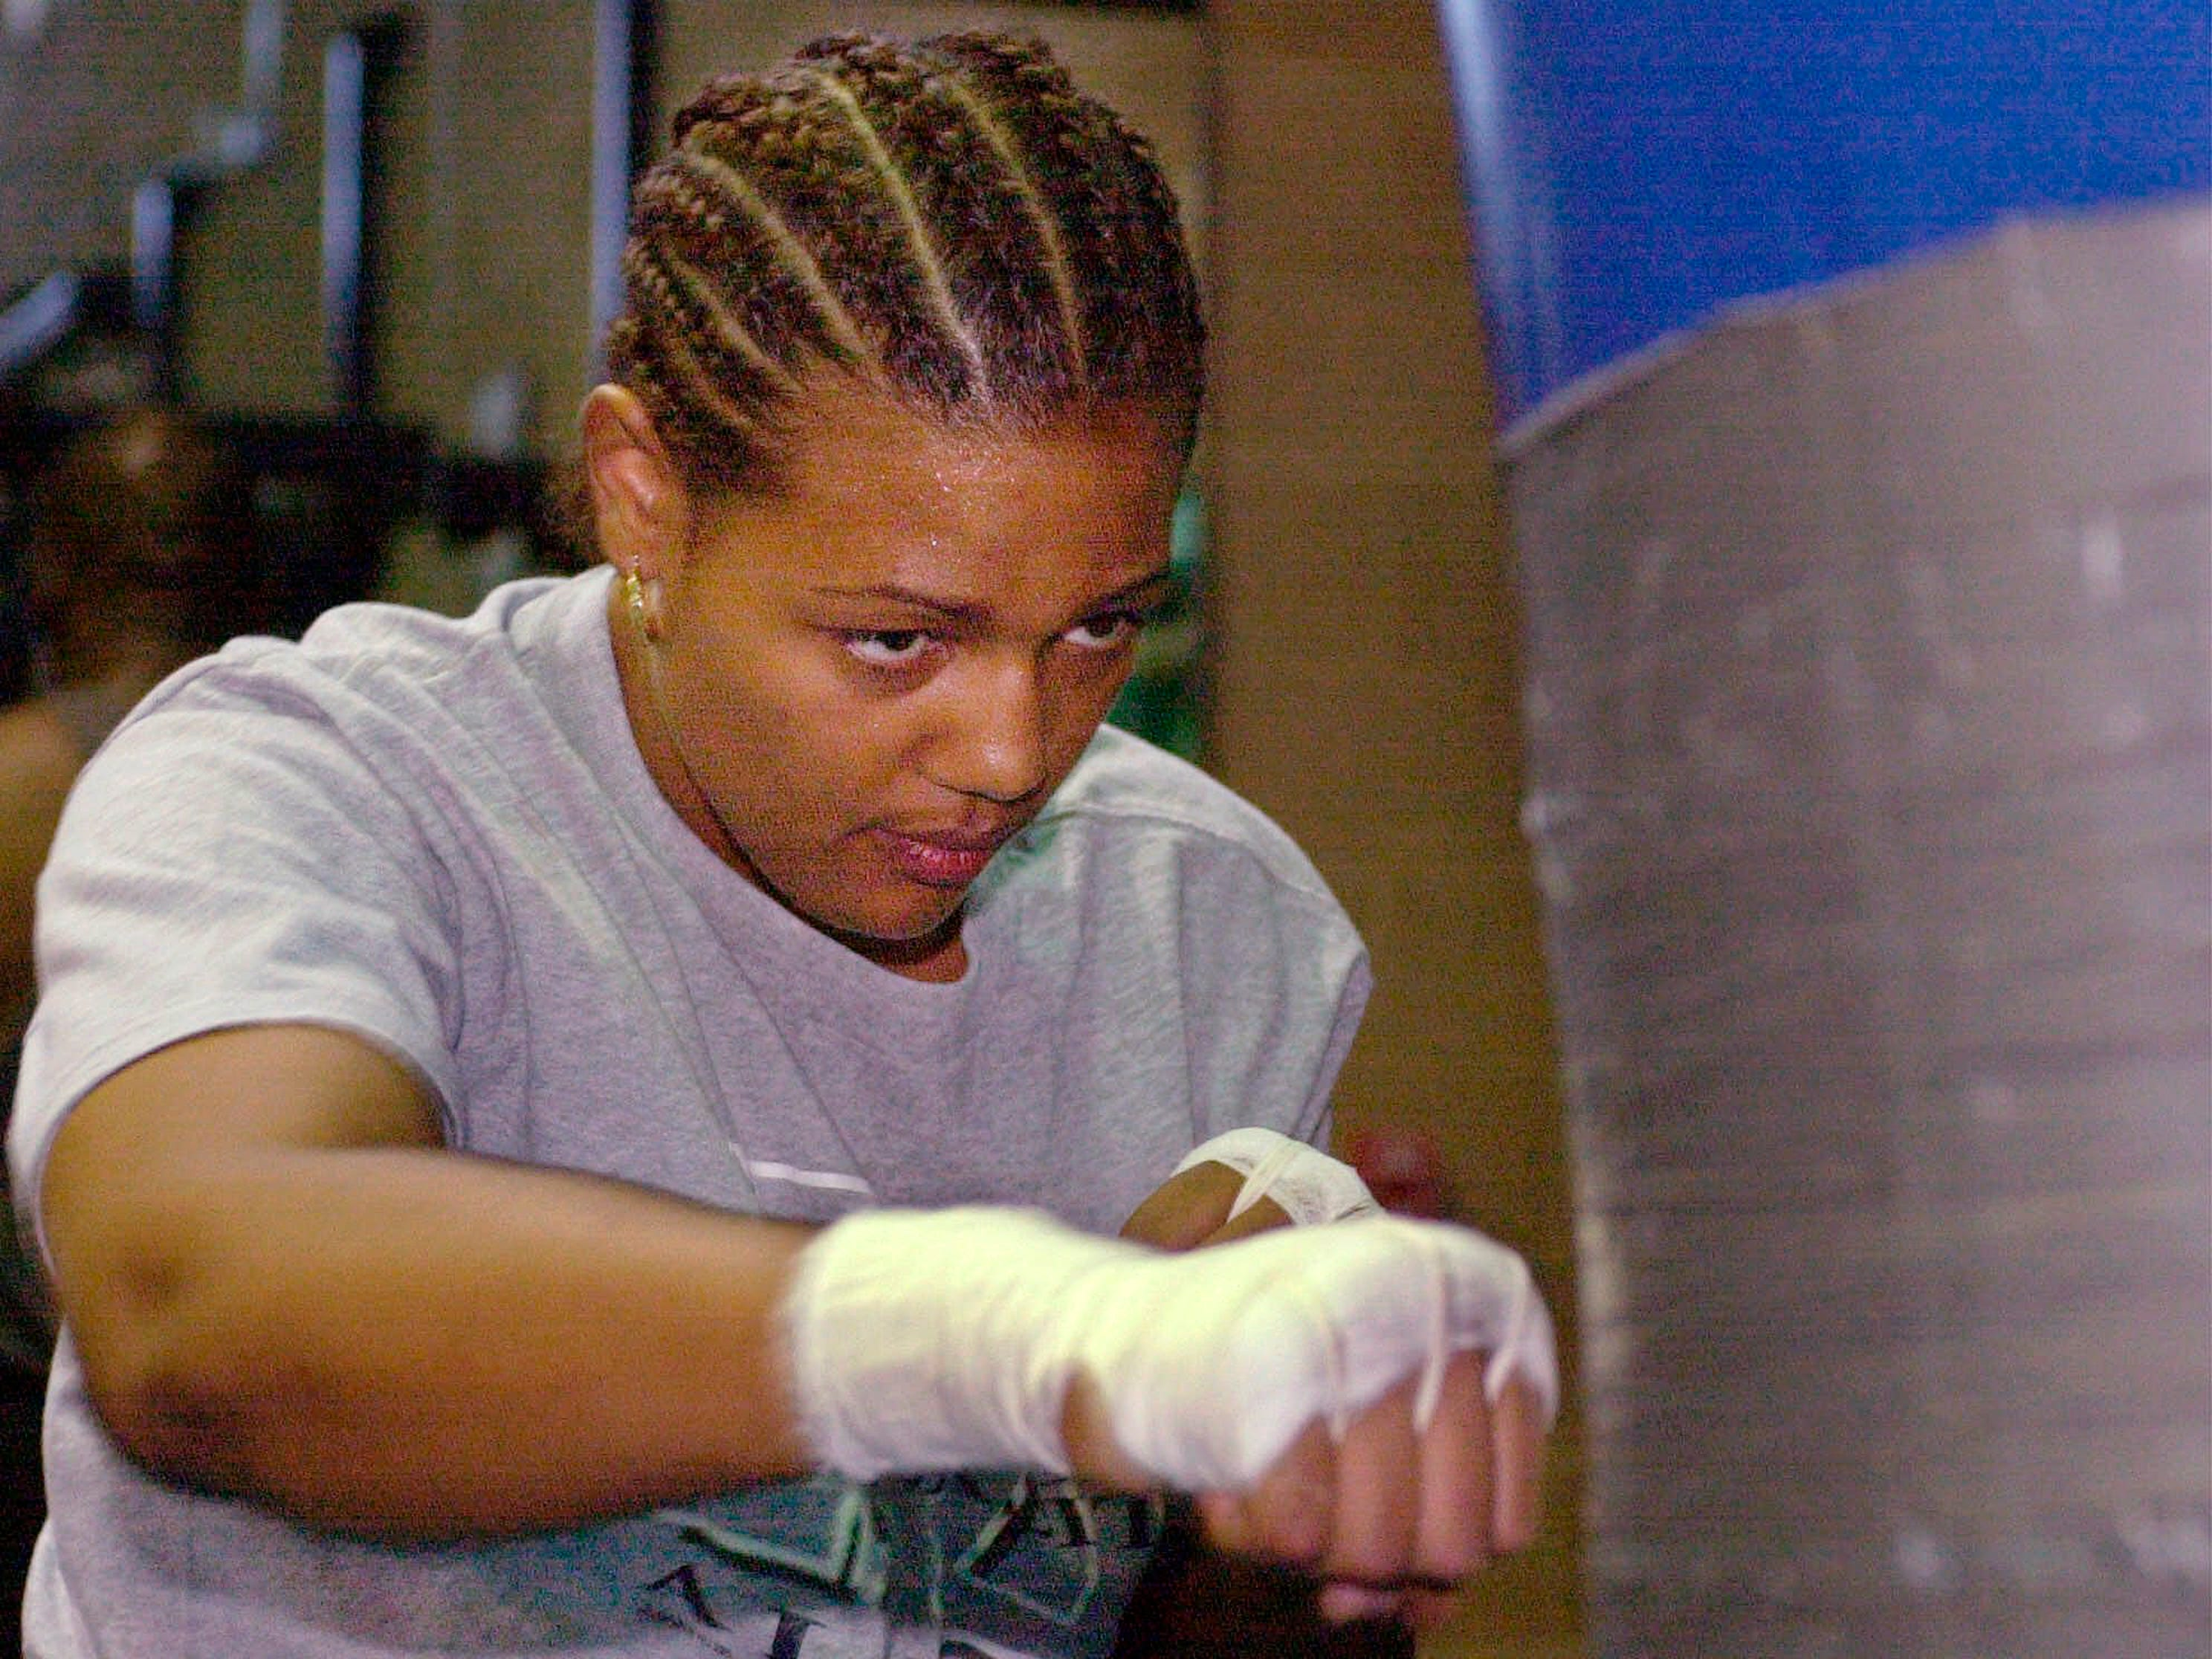 Freeda George Forman, the daughter of former heavyweight champion George Foreman and briefly a boxer herself. March 8. She was 42.